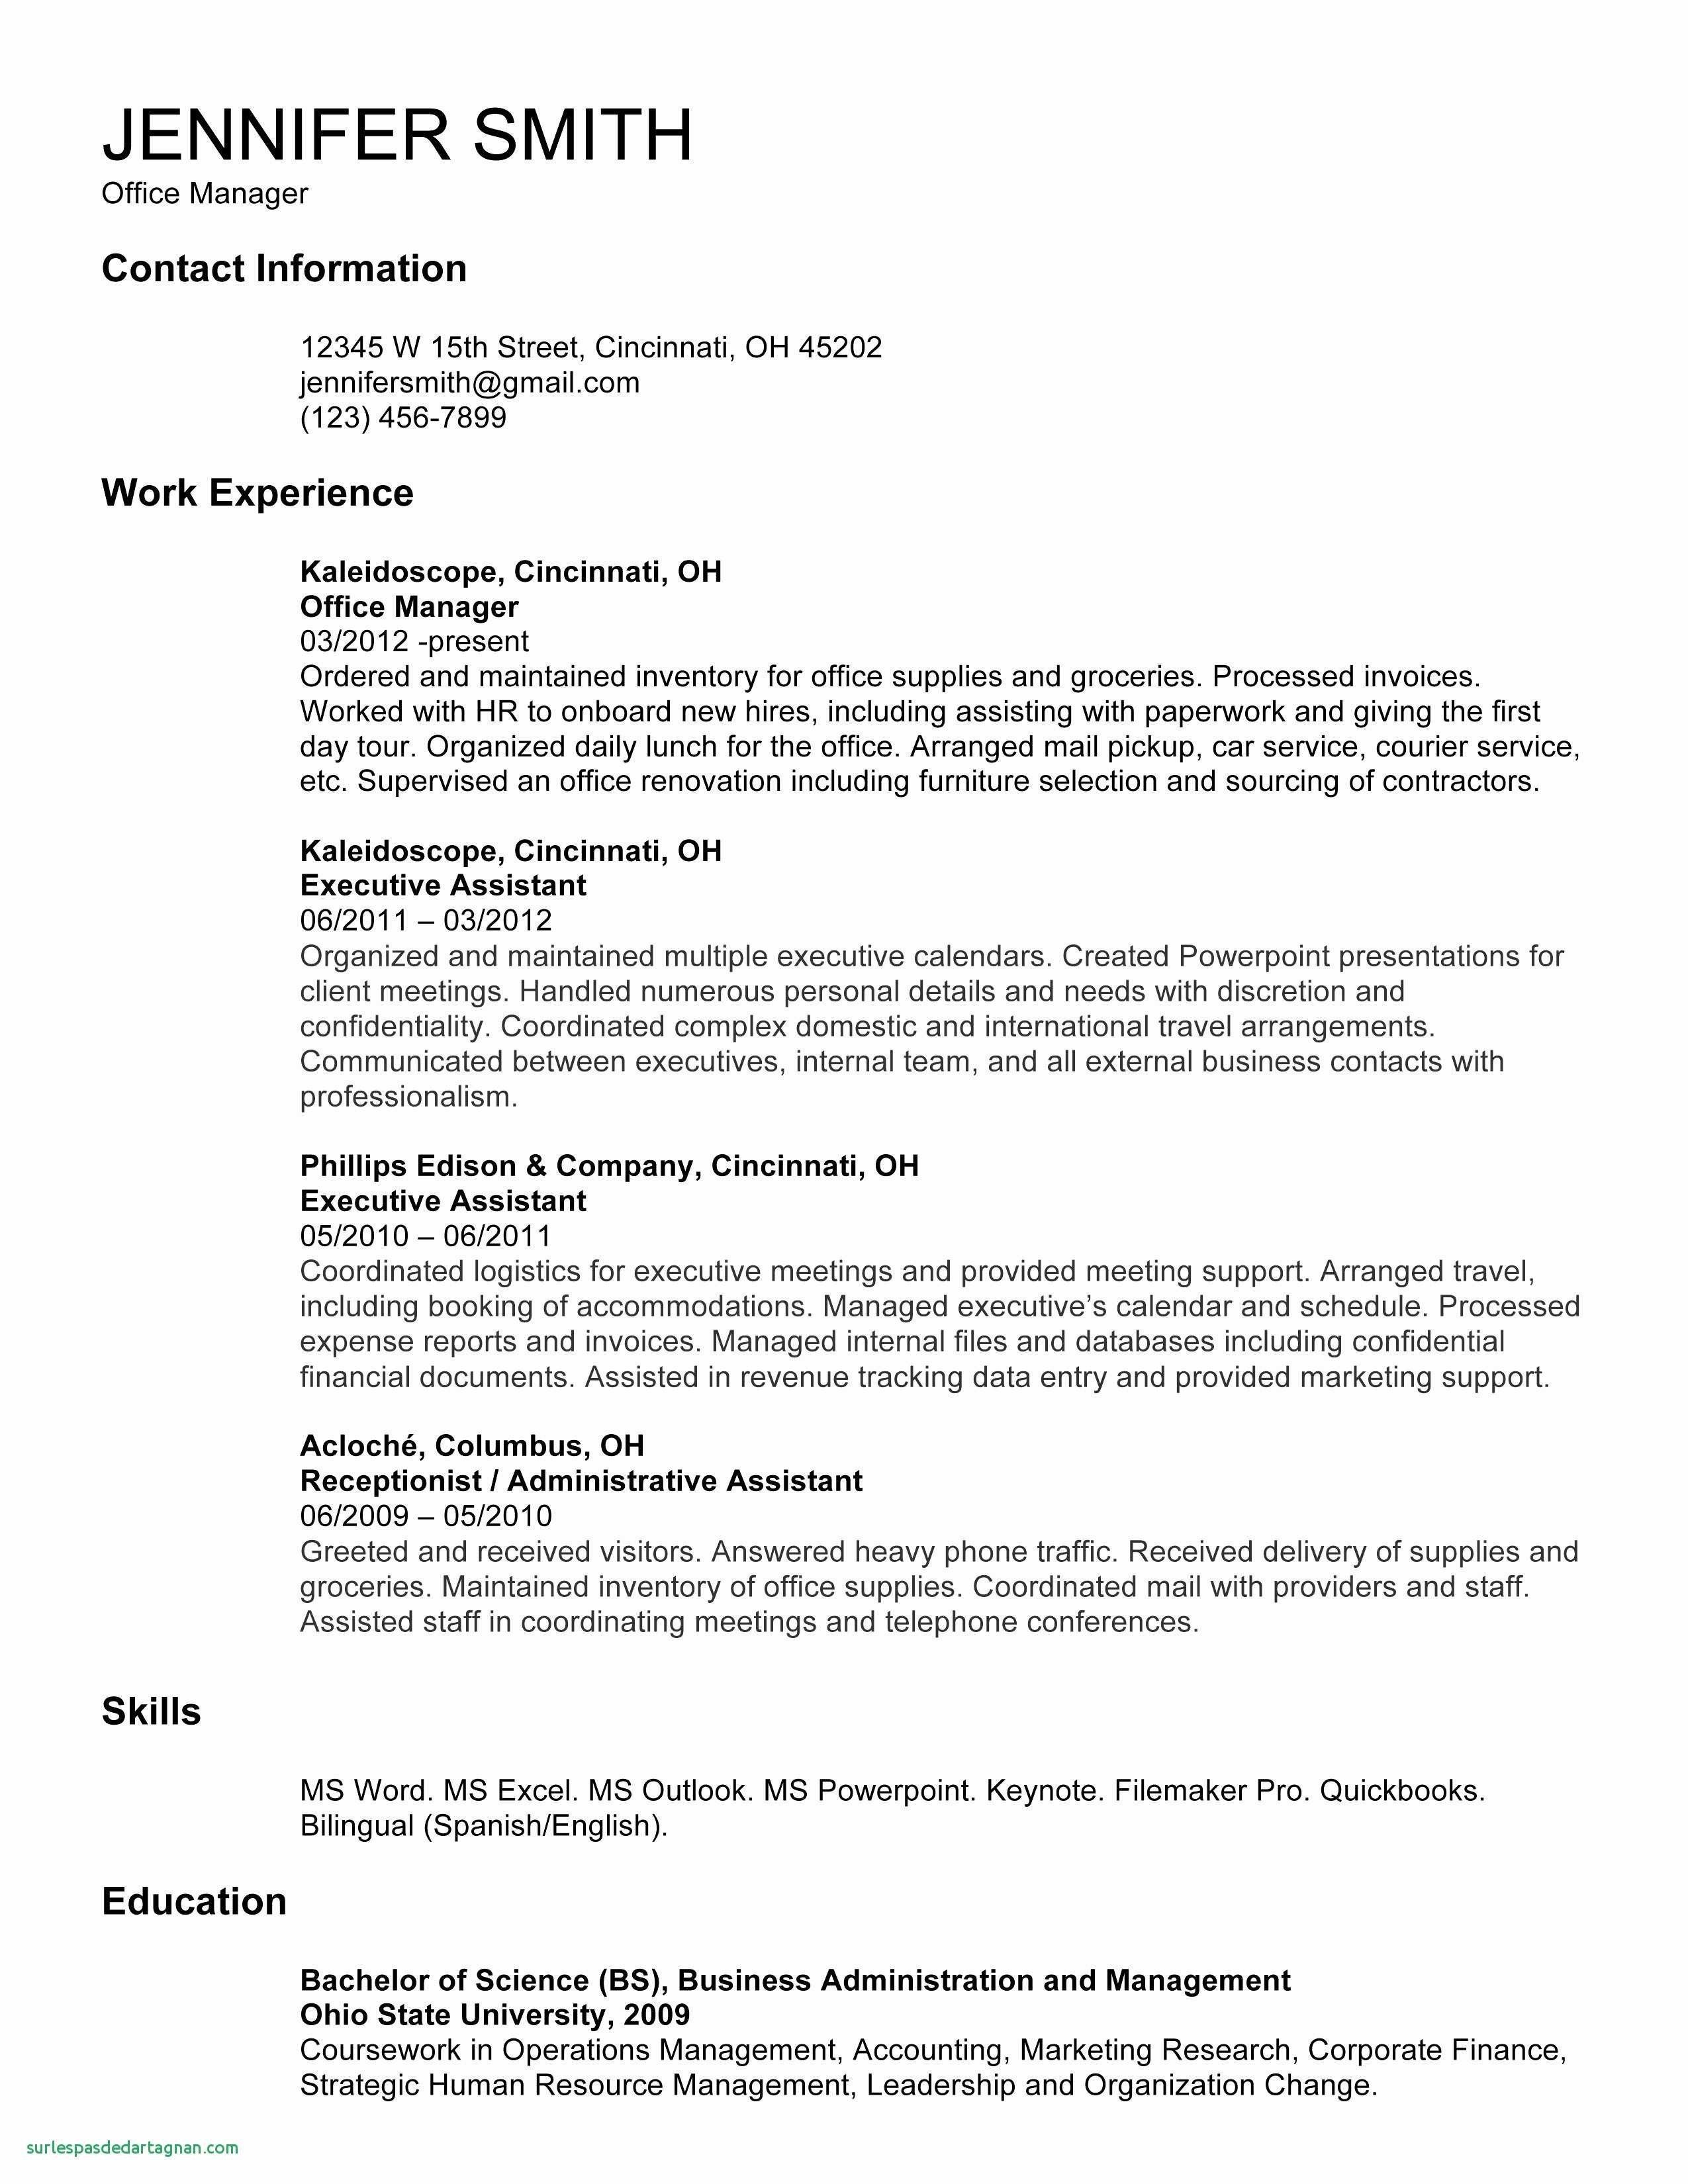 free template resume download Collection-Free Templates For Resumes To Download Valid ¢Ë†Å¡ Resume Template Download Free Luxury Empty Resume 0d Archives 16-c